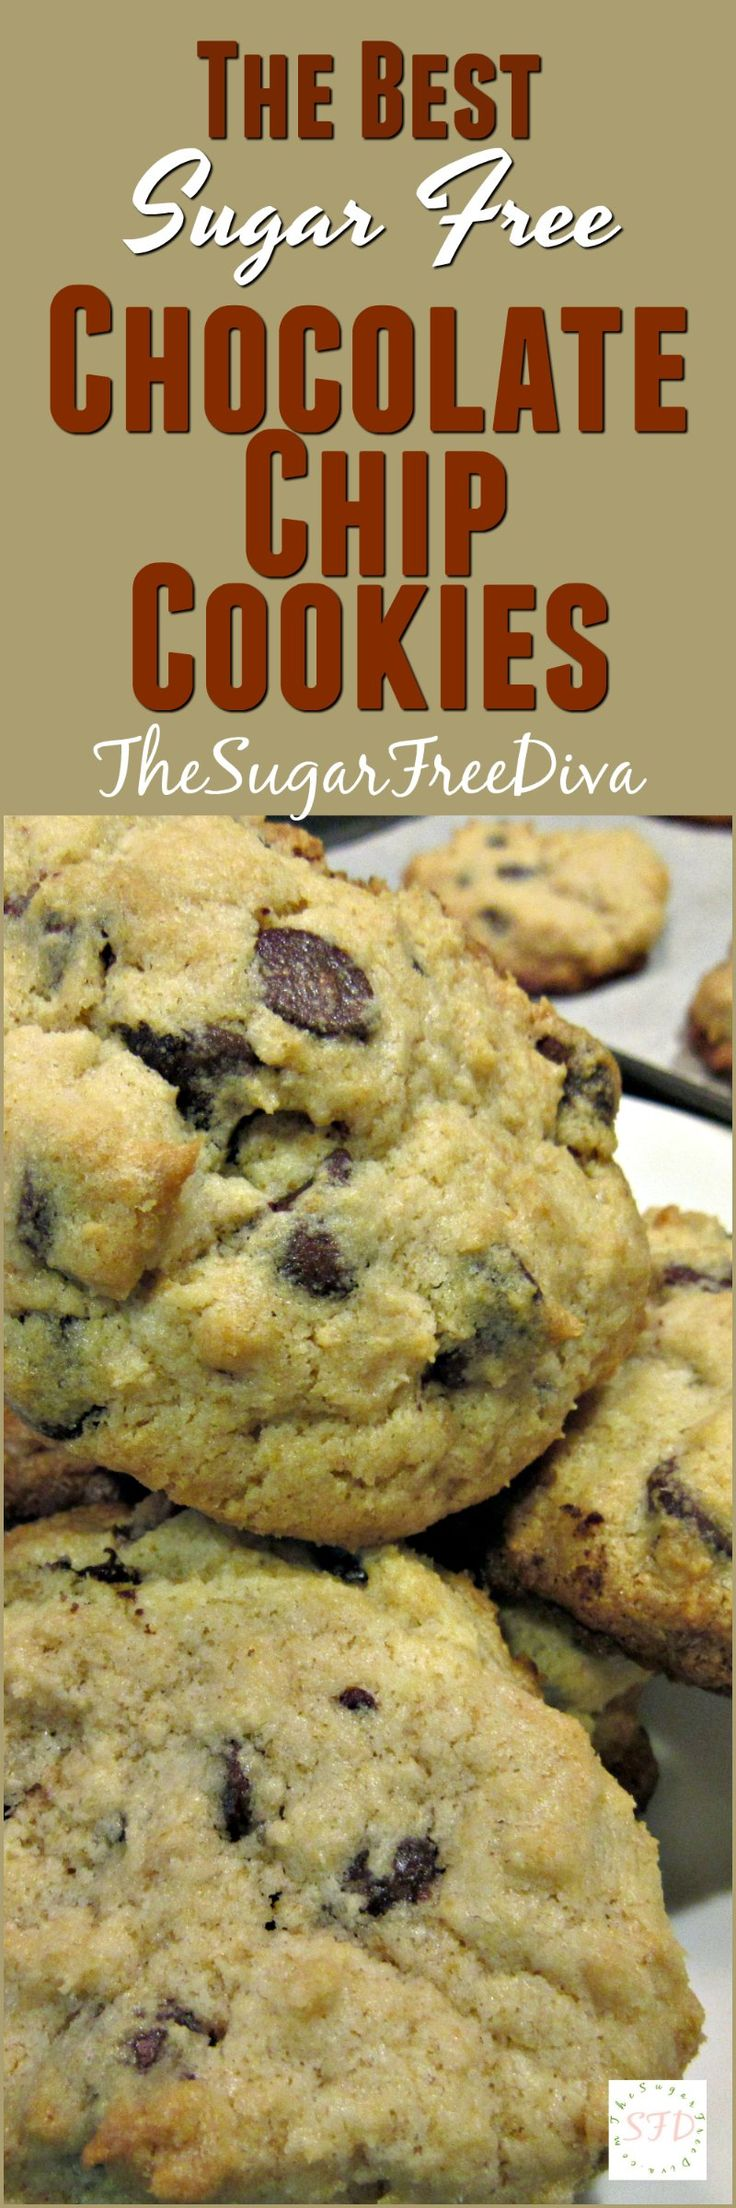 The Best Sugar Free Chocolate Chip Cookies-Wow! What a yummy looking recipe!!!!